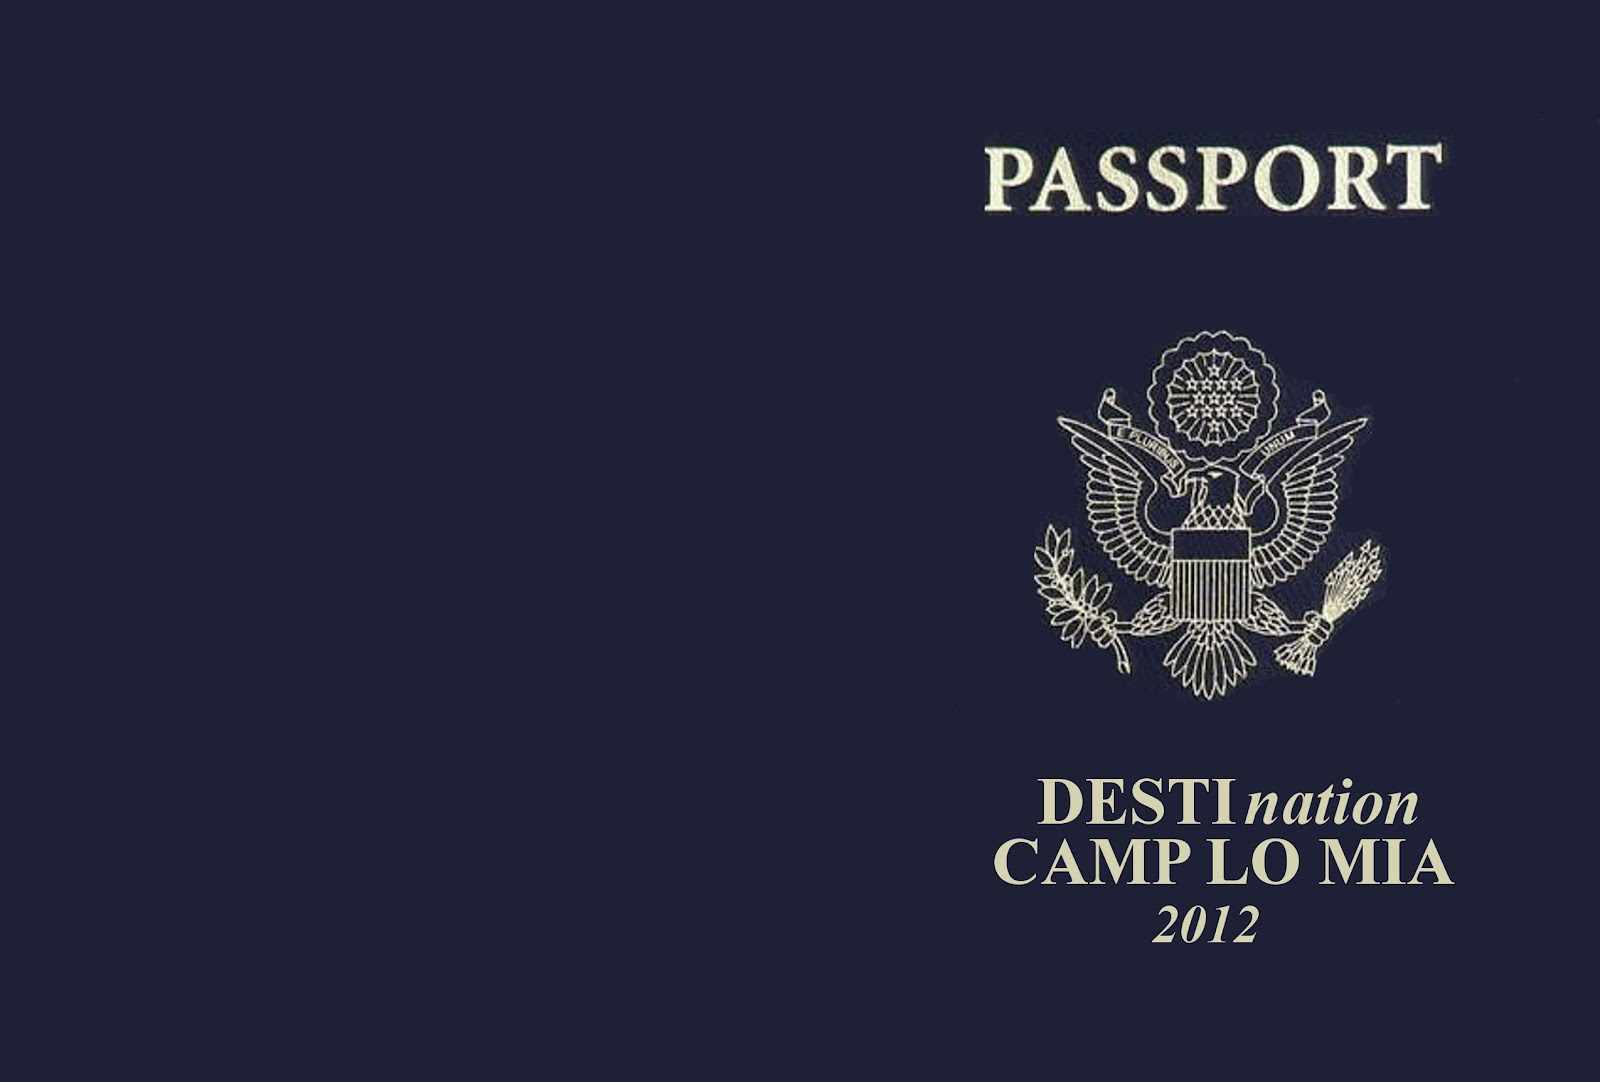 Passport cover clipart.